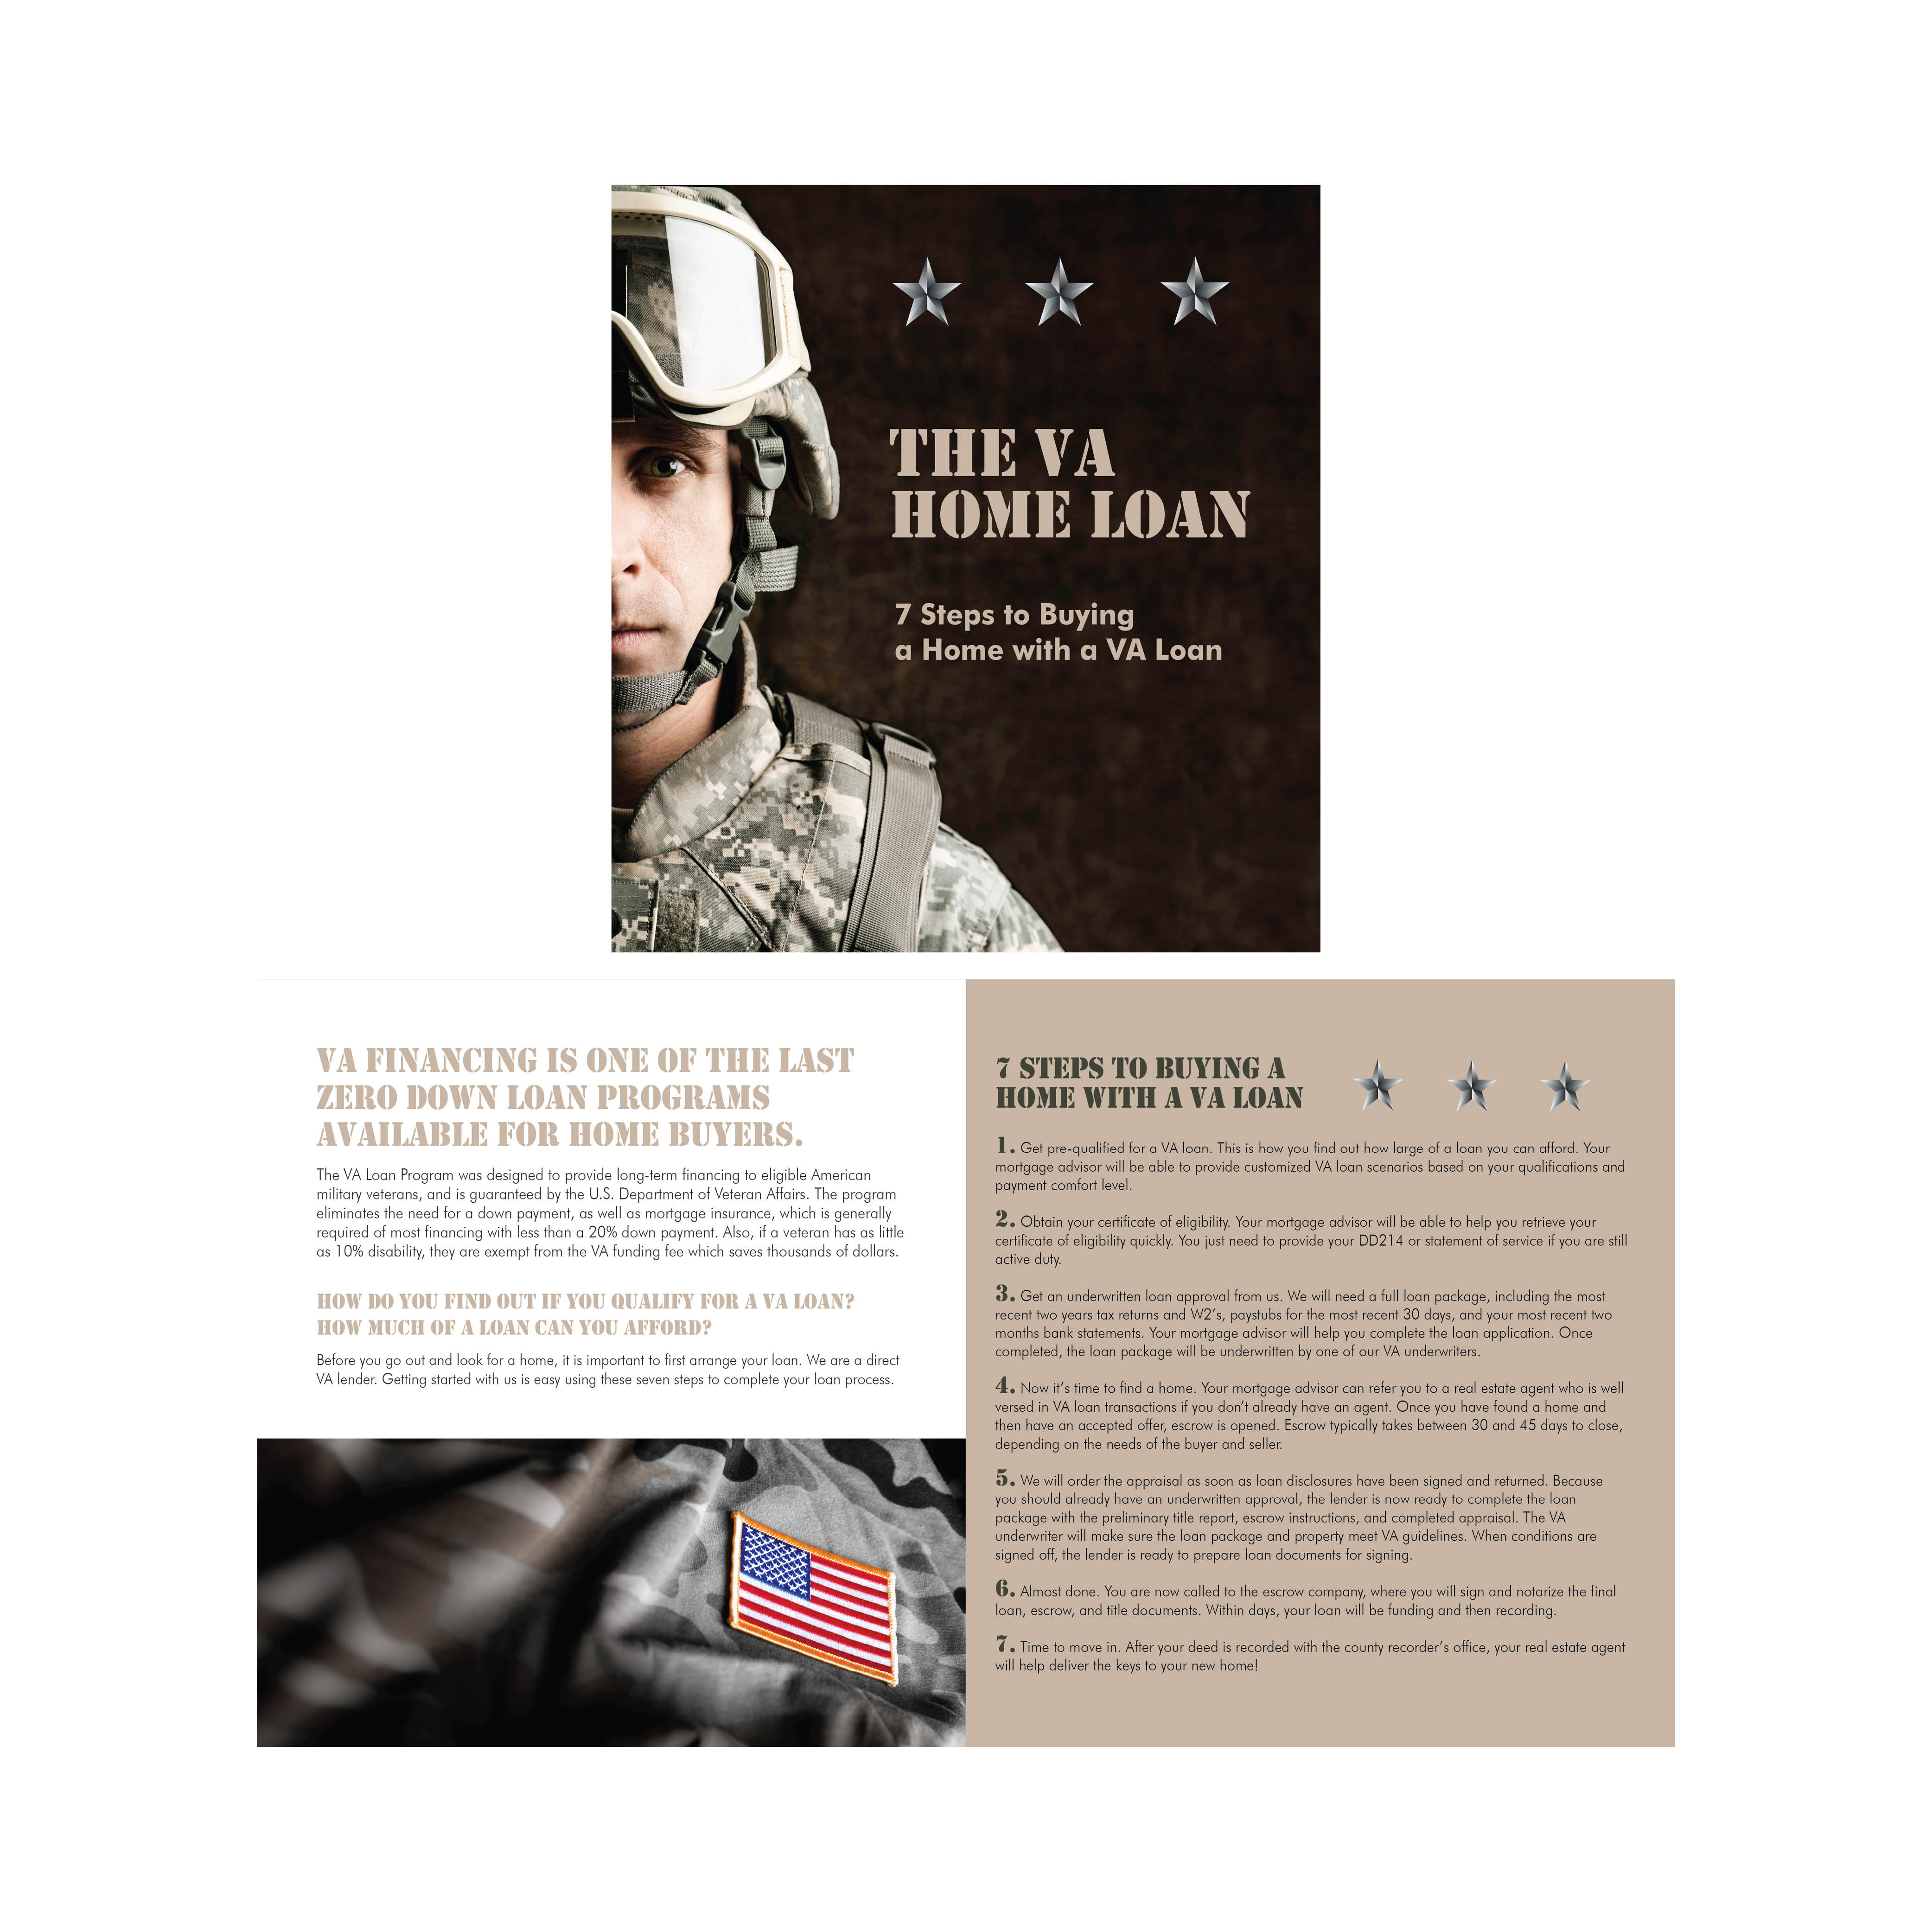 VA LOAN PROGRAM FOLD